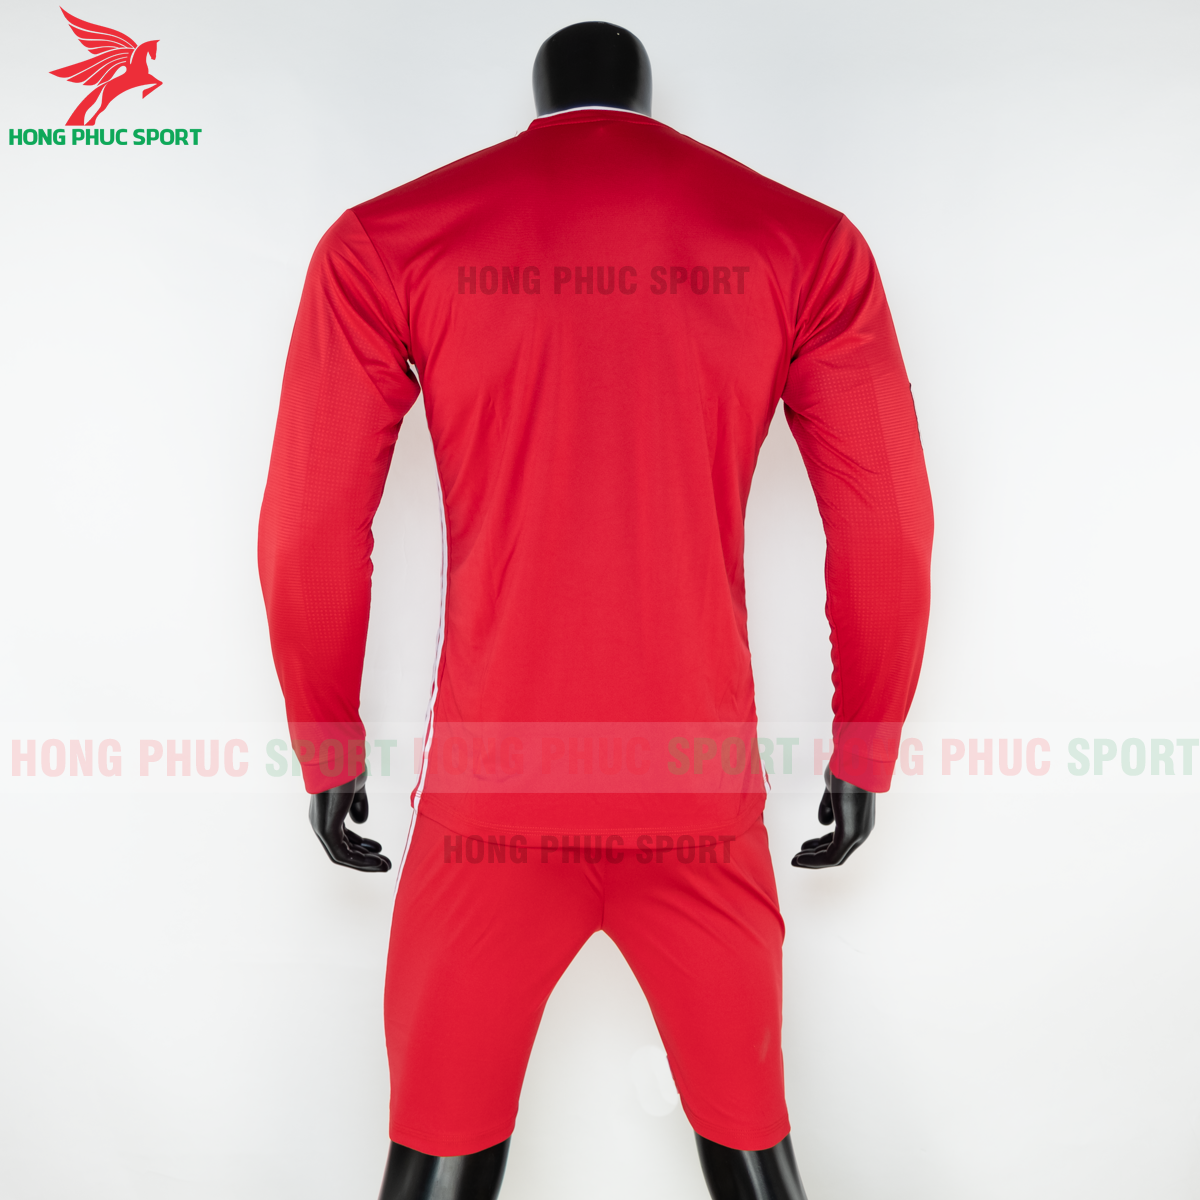 https://cdn.hongphucsport.com/unsafe/s4.shopbay.vn/files/285/ao-dai-tay-bayern-munich-2020-san-nha-8-5f8fba0a32f1f.png